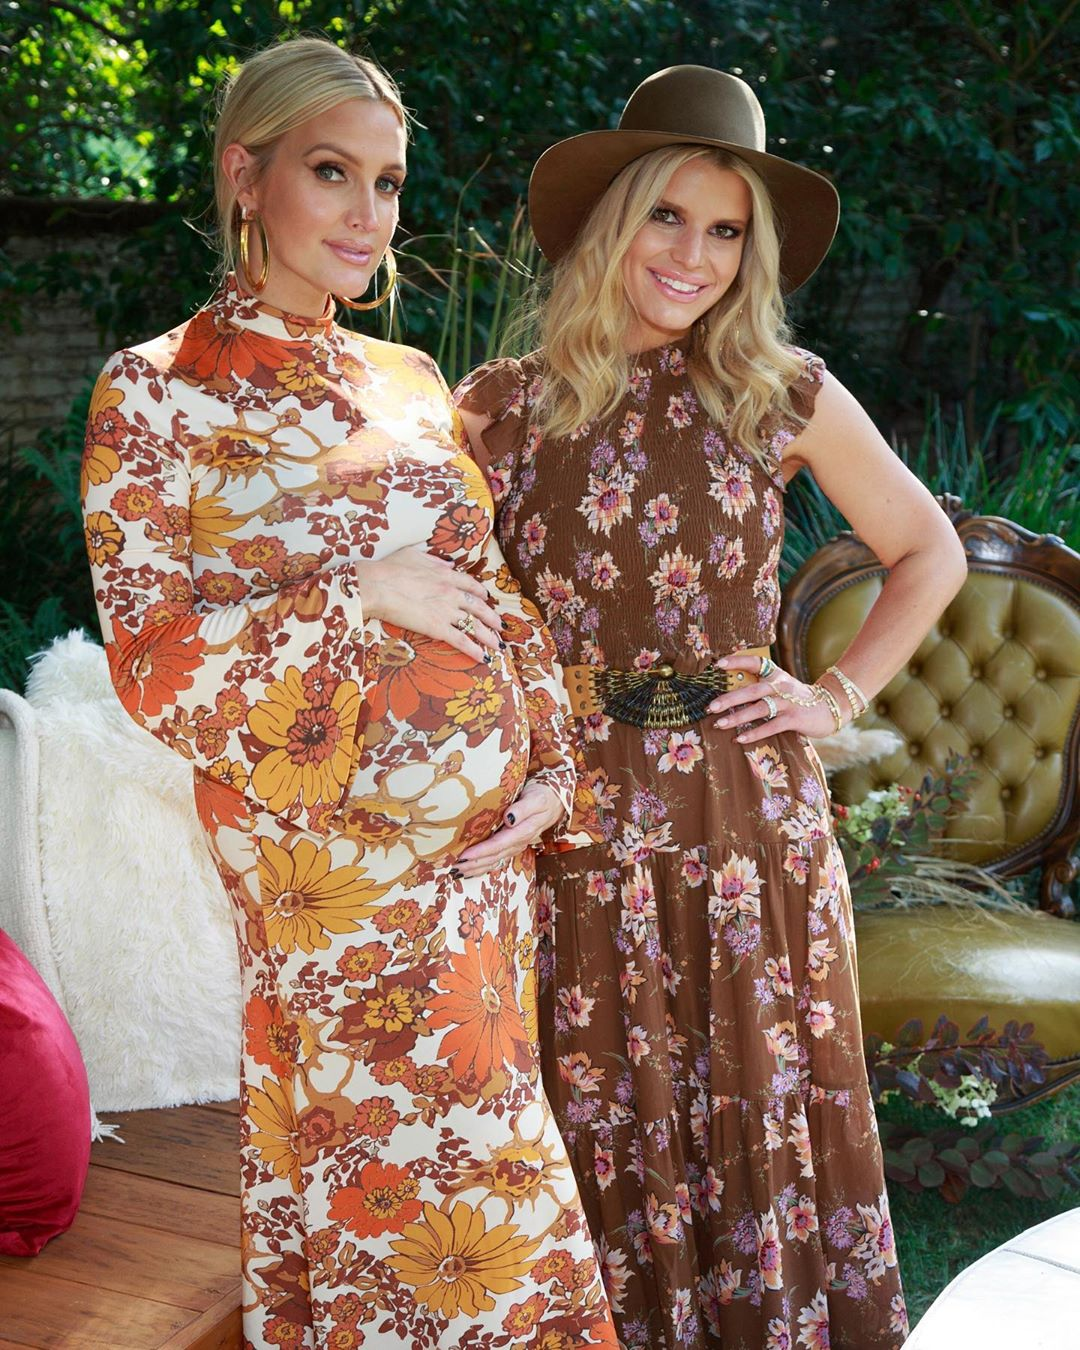 Ashlee Simpson Ross Baby Shower and Bump With Jessica Simpson